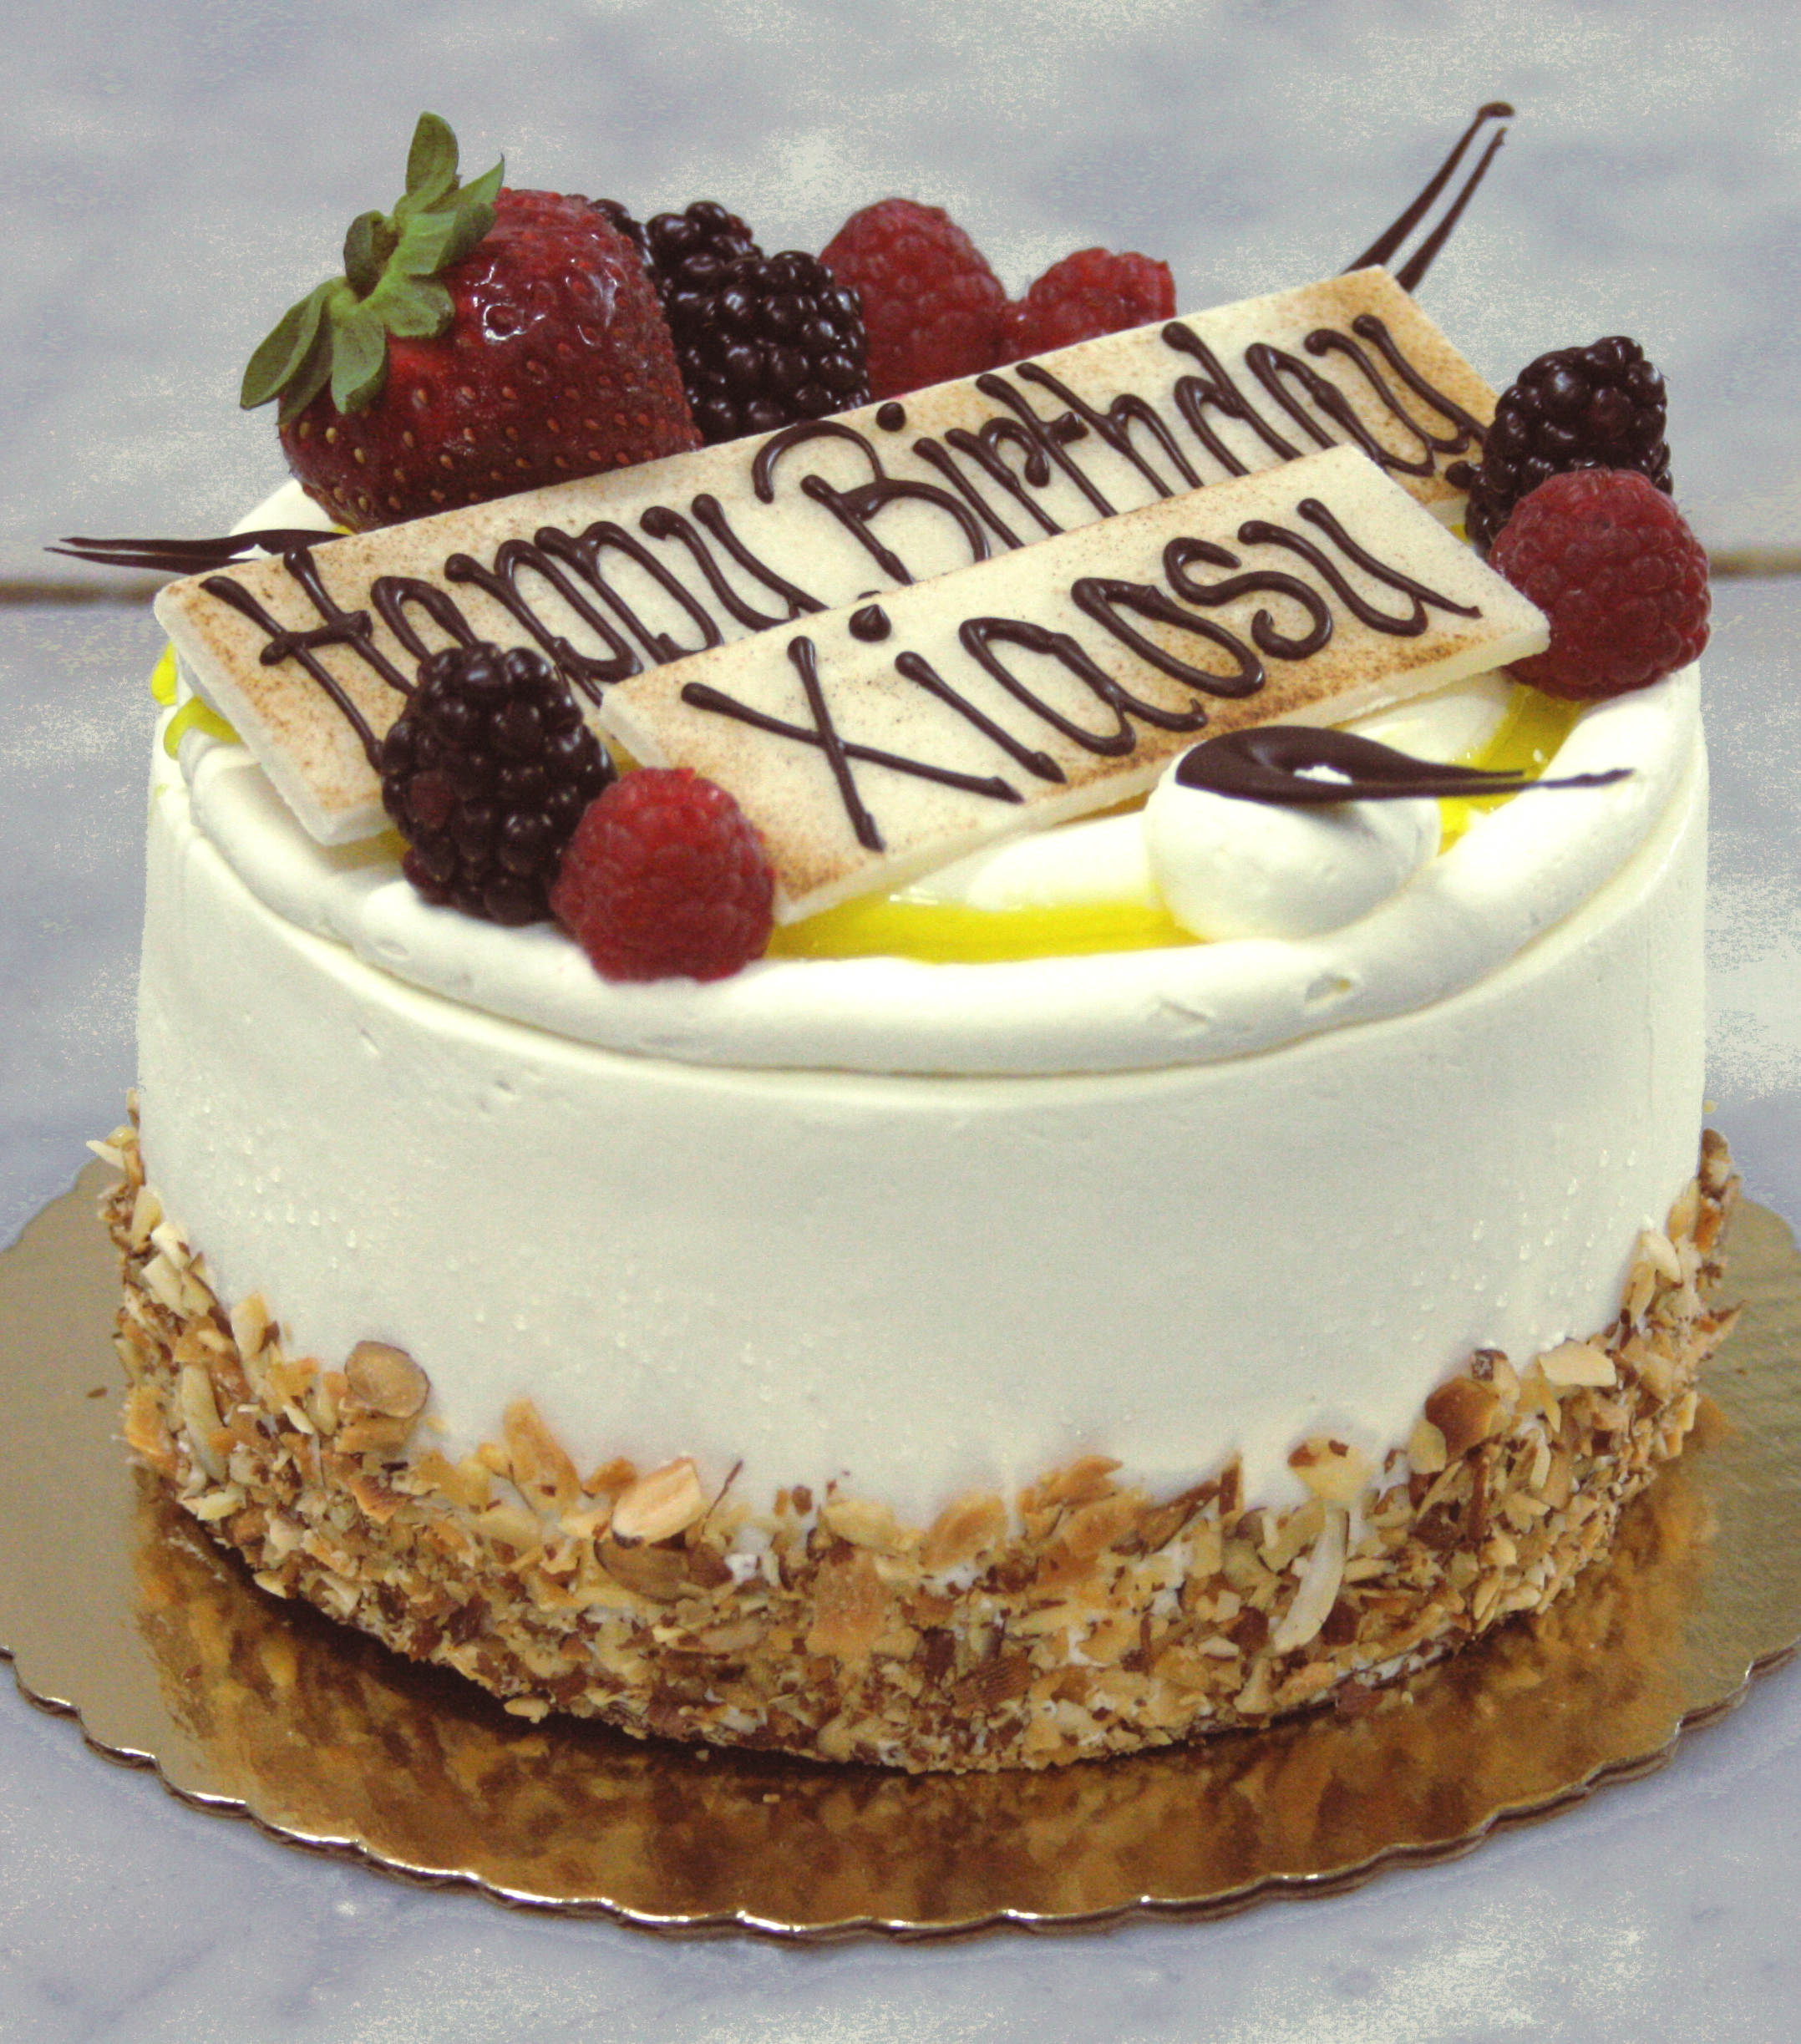 6 Inch Passion Fruit Cake With Birthday Decoration Specialty Cakes Passion Fruit Cake Cake